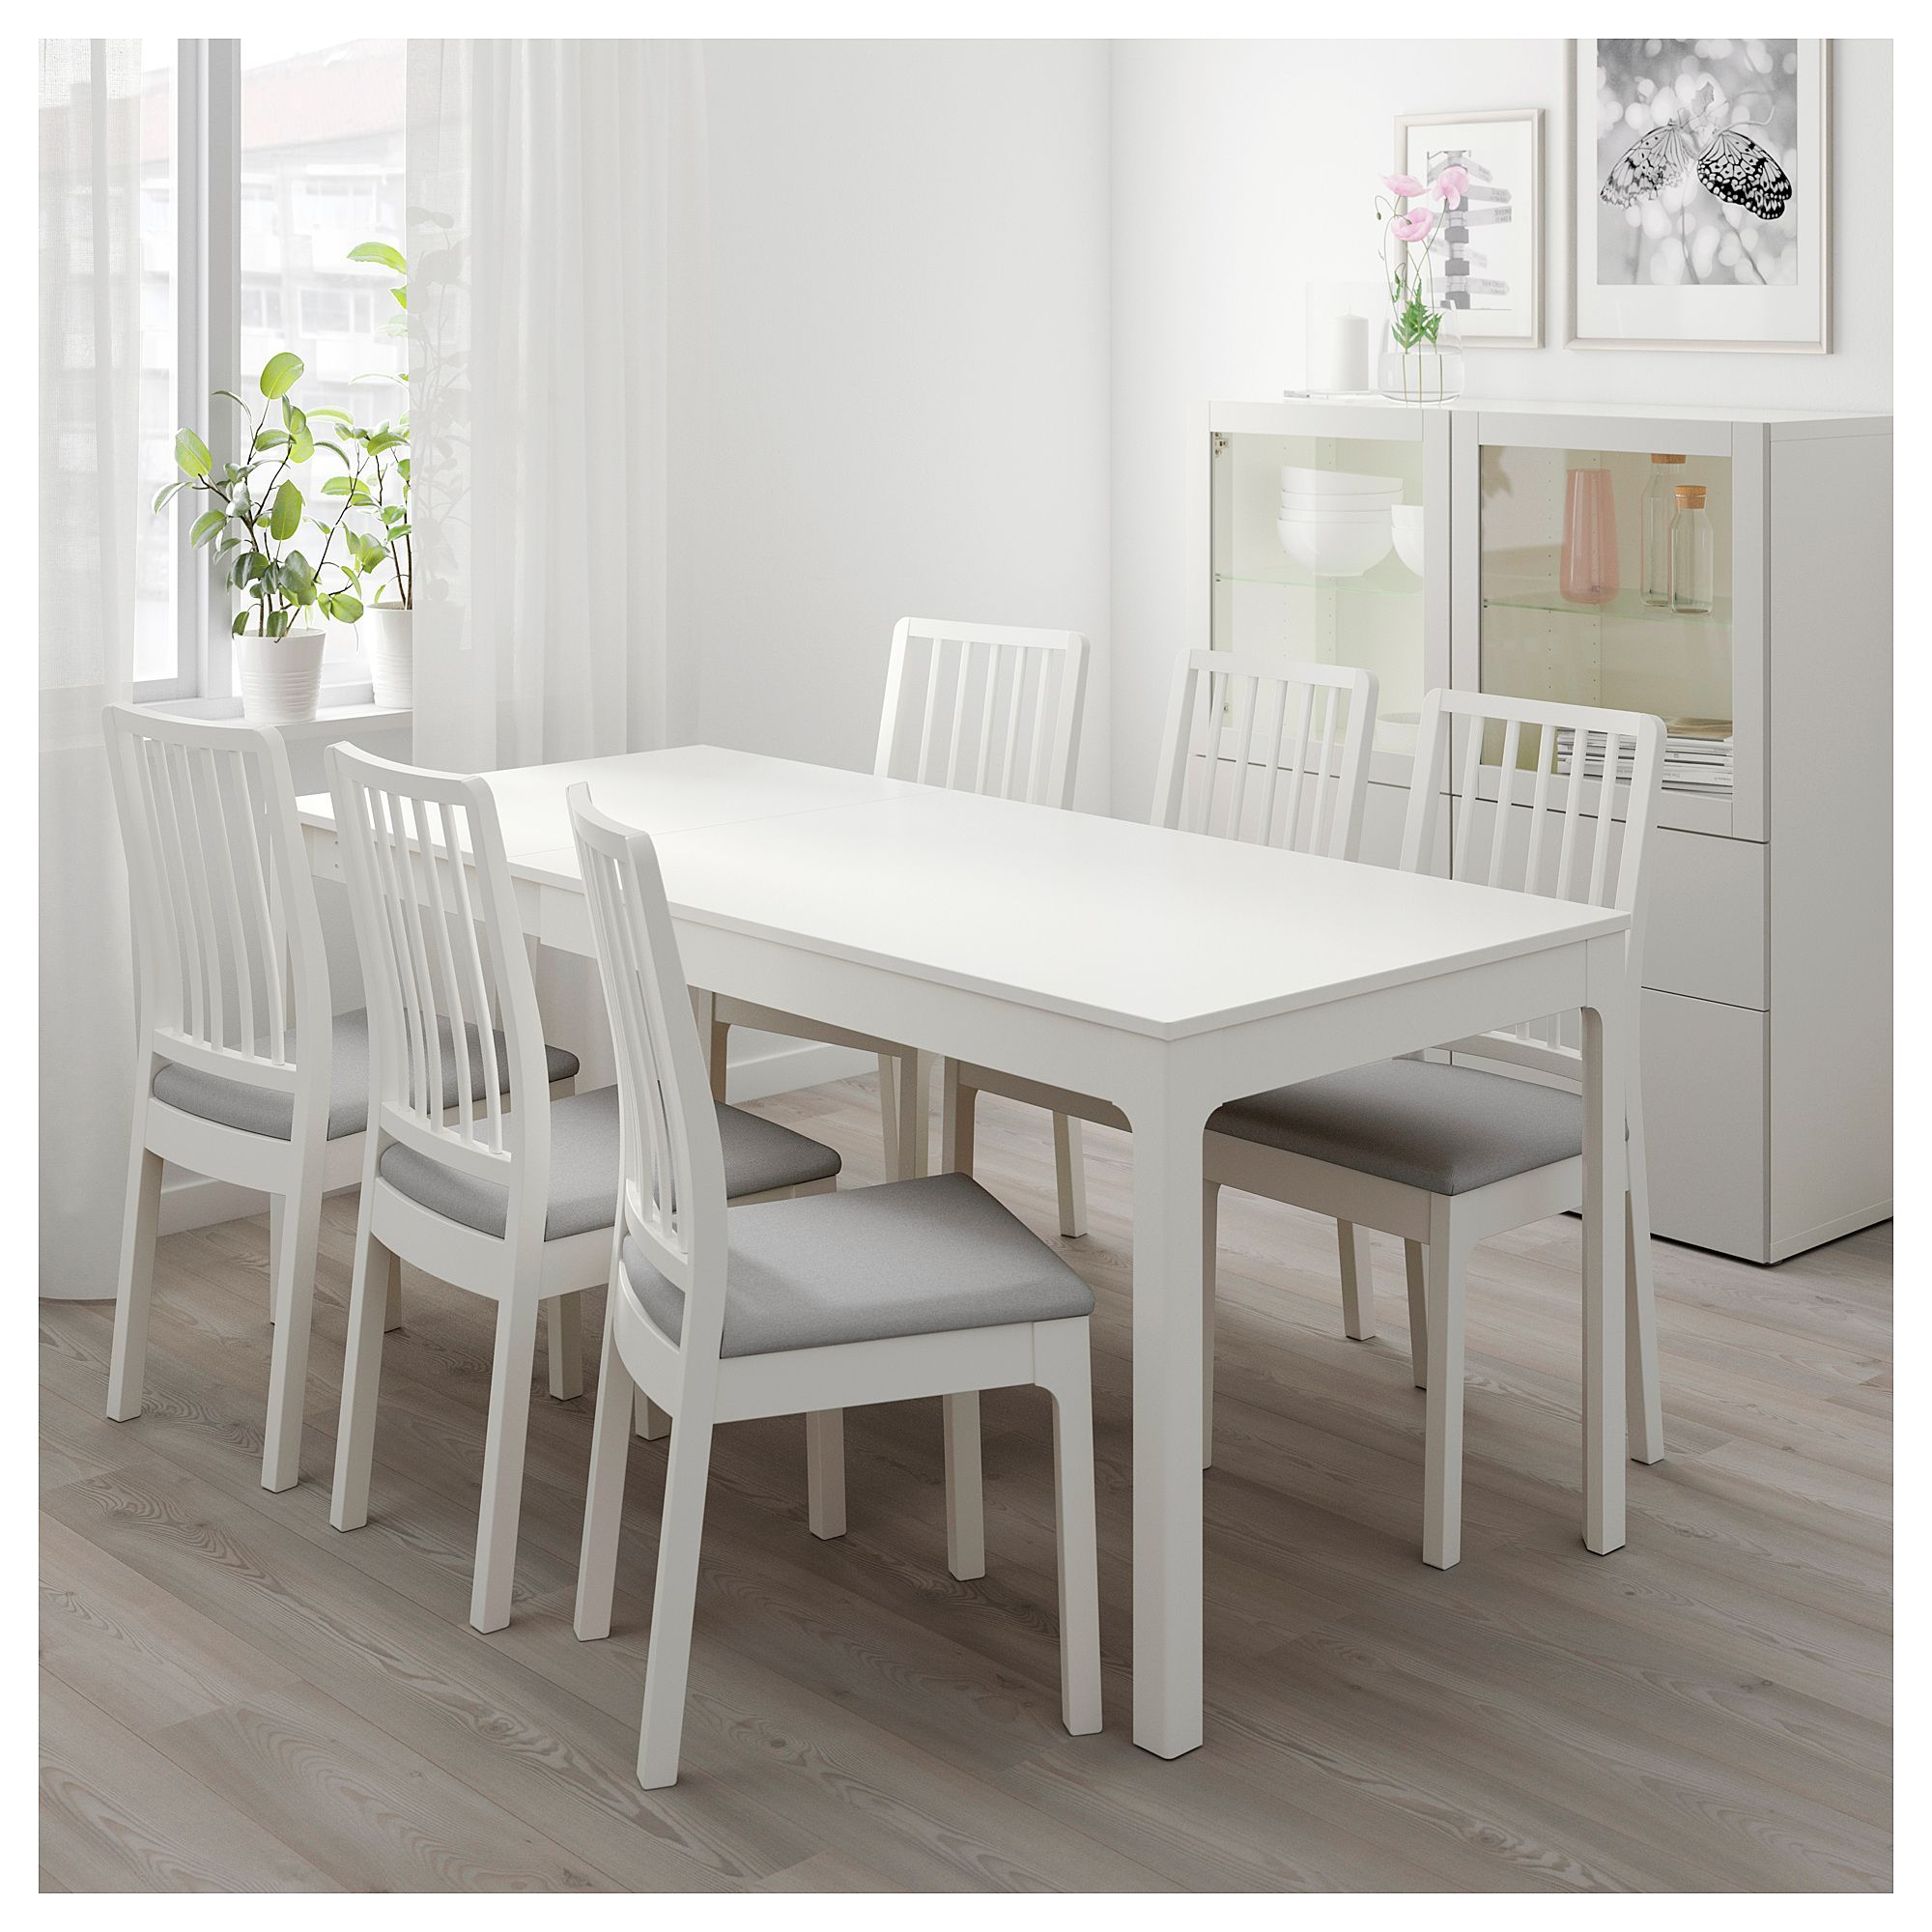 Table Cuisine Extensible Ikea Ikea Ekedalen Table And 4 Chairs White Orrsta Light Gray In